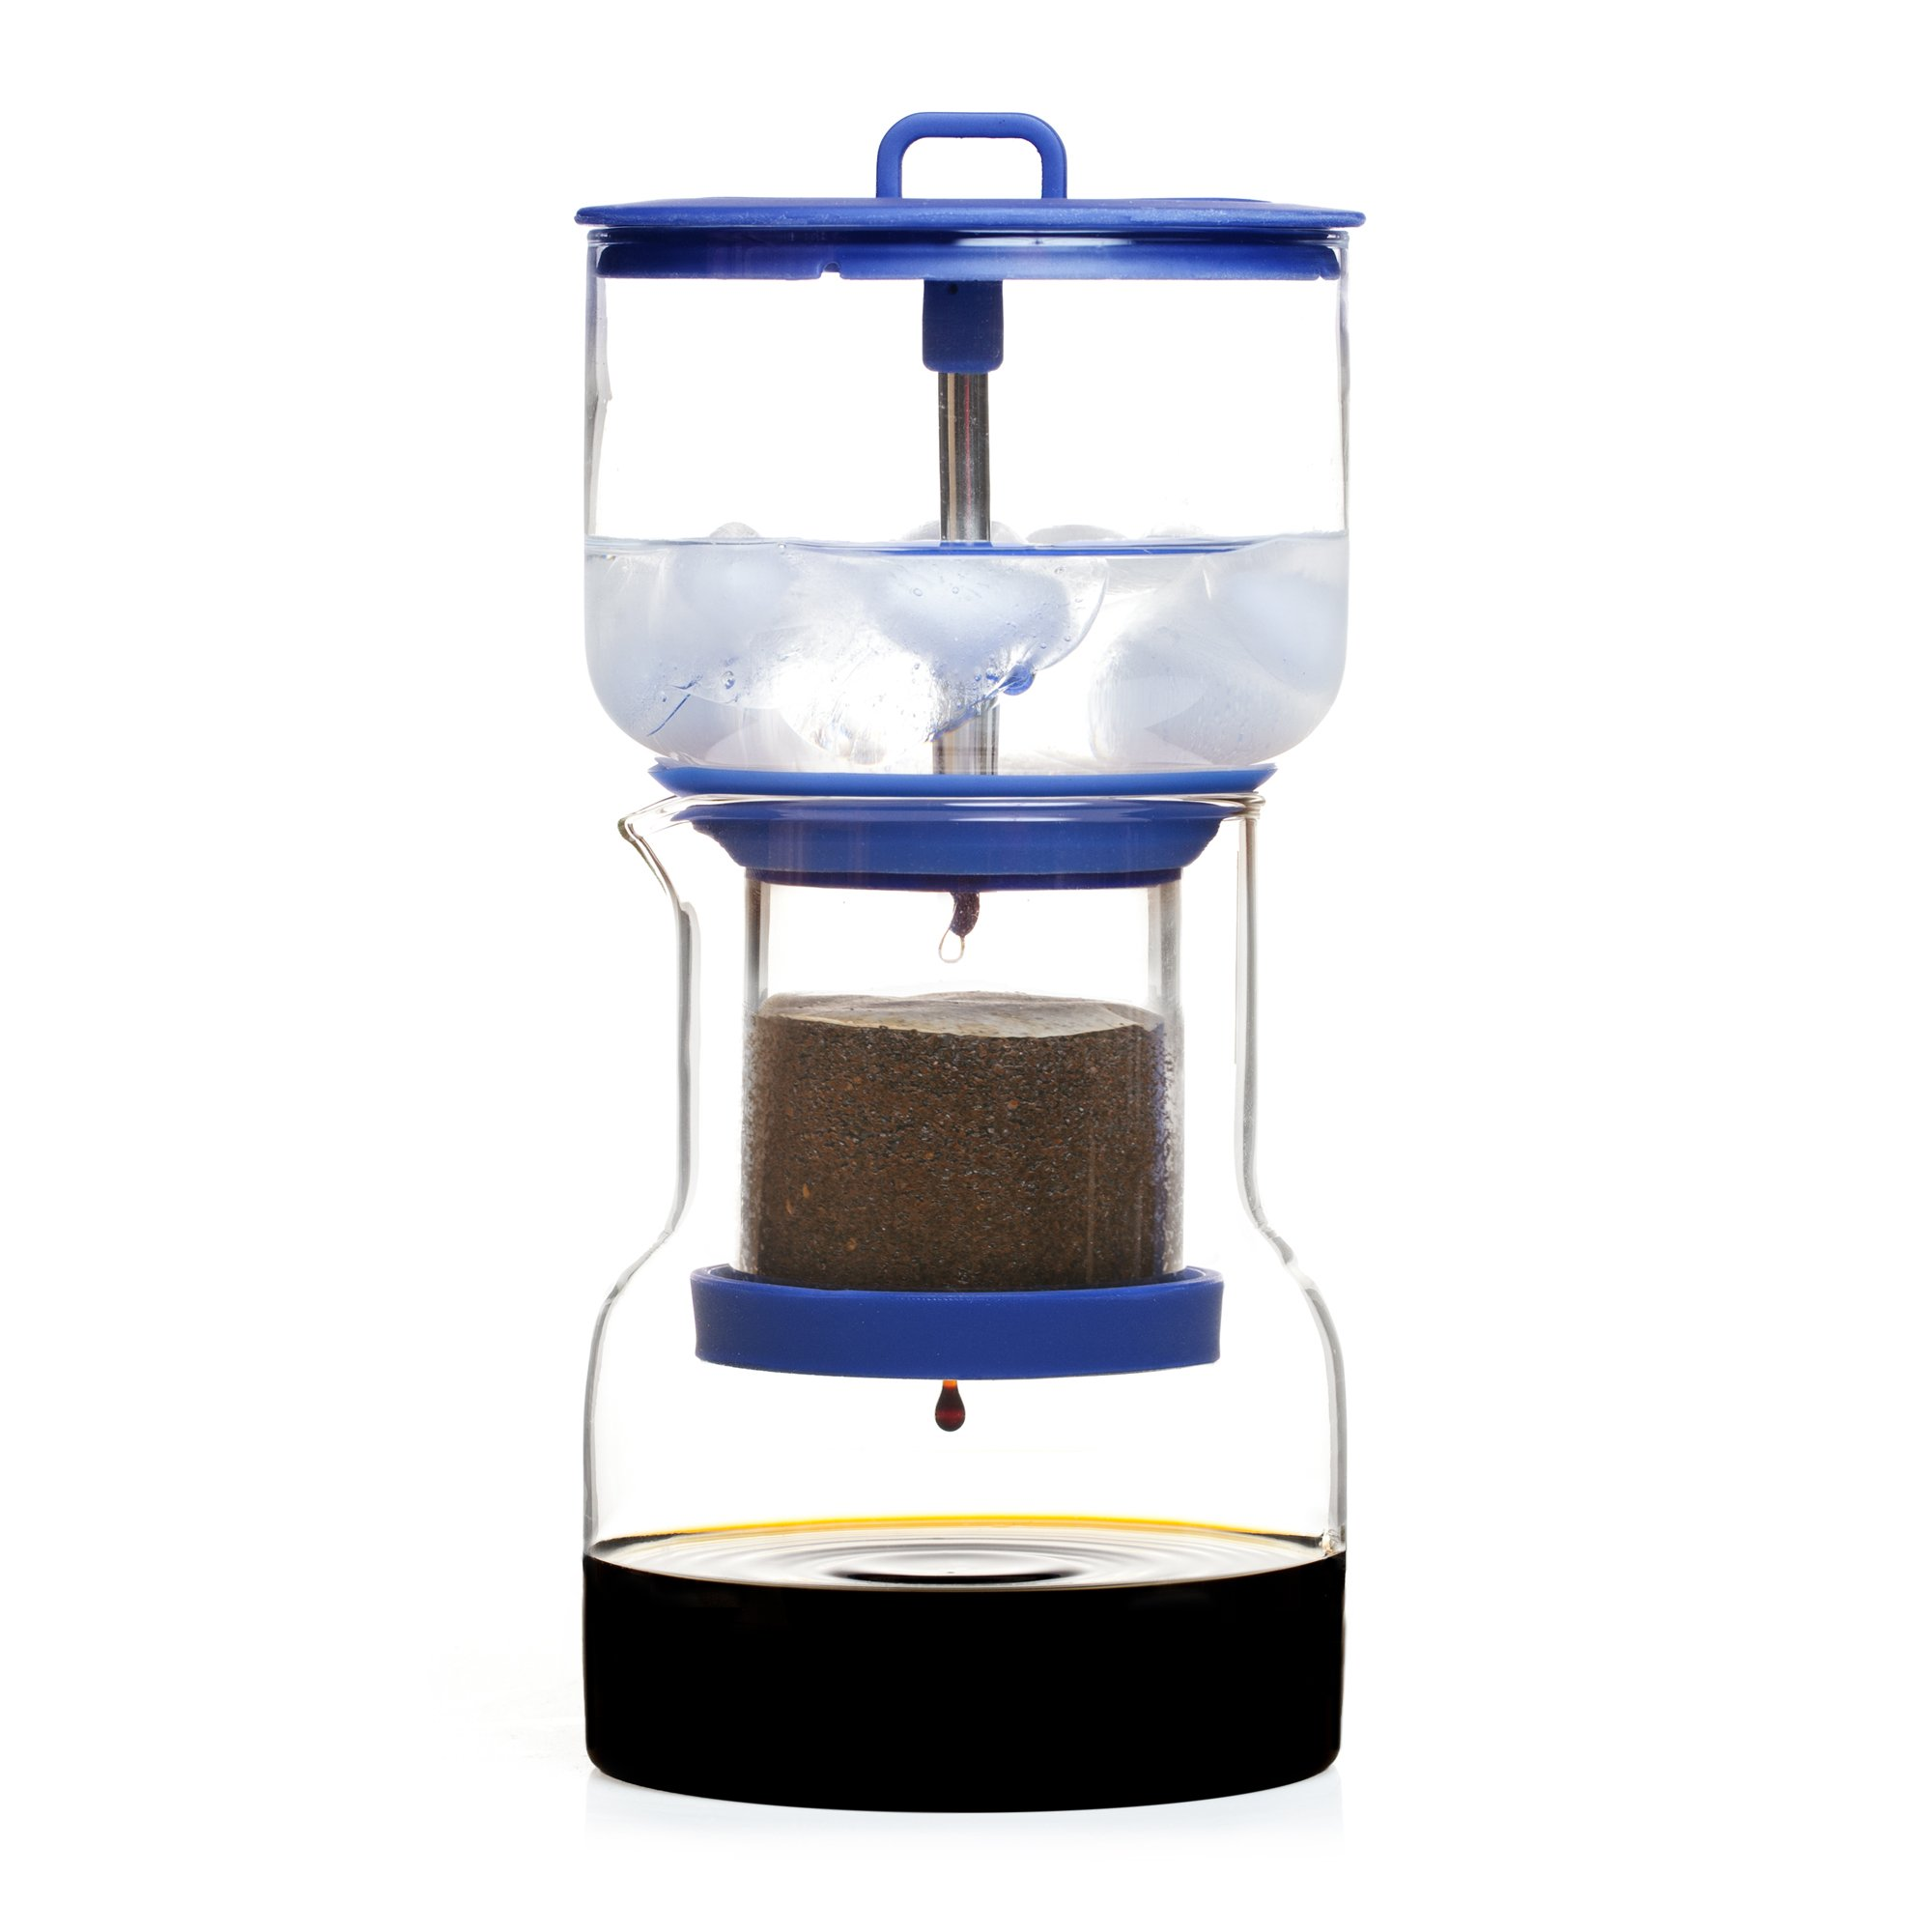 Cold Bruer Drip Coffee Maker B1,Blue by Cold Bruer